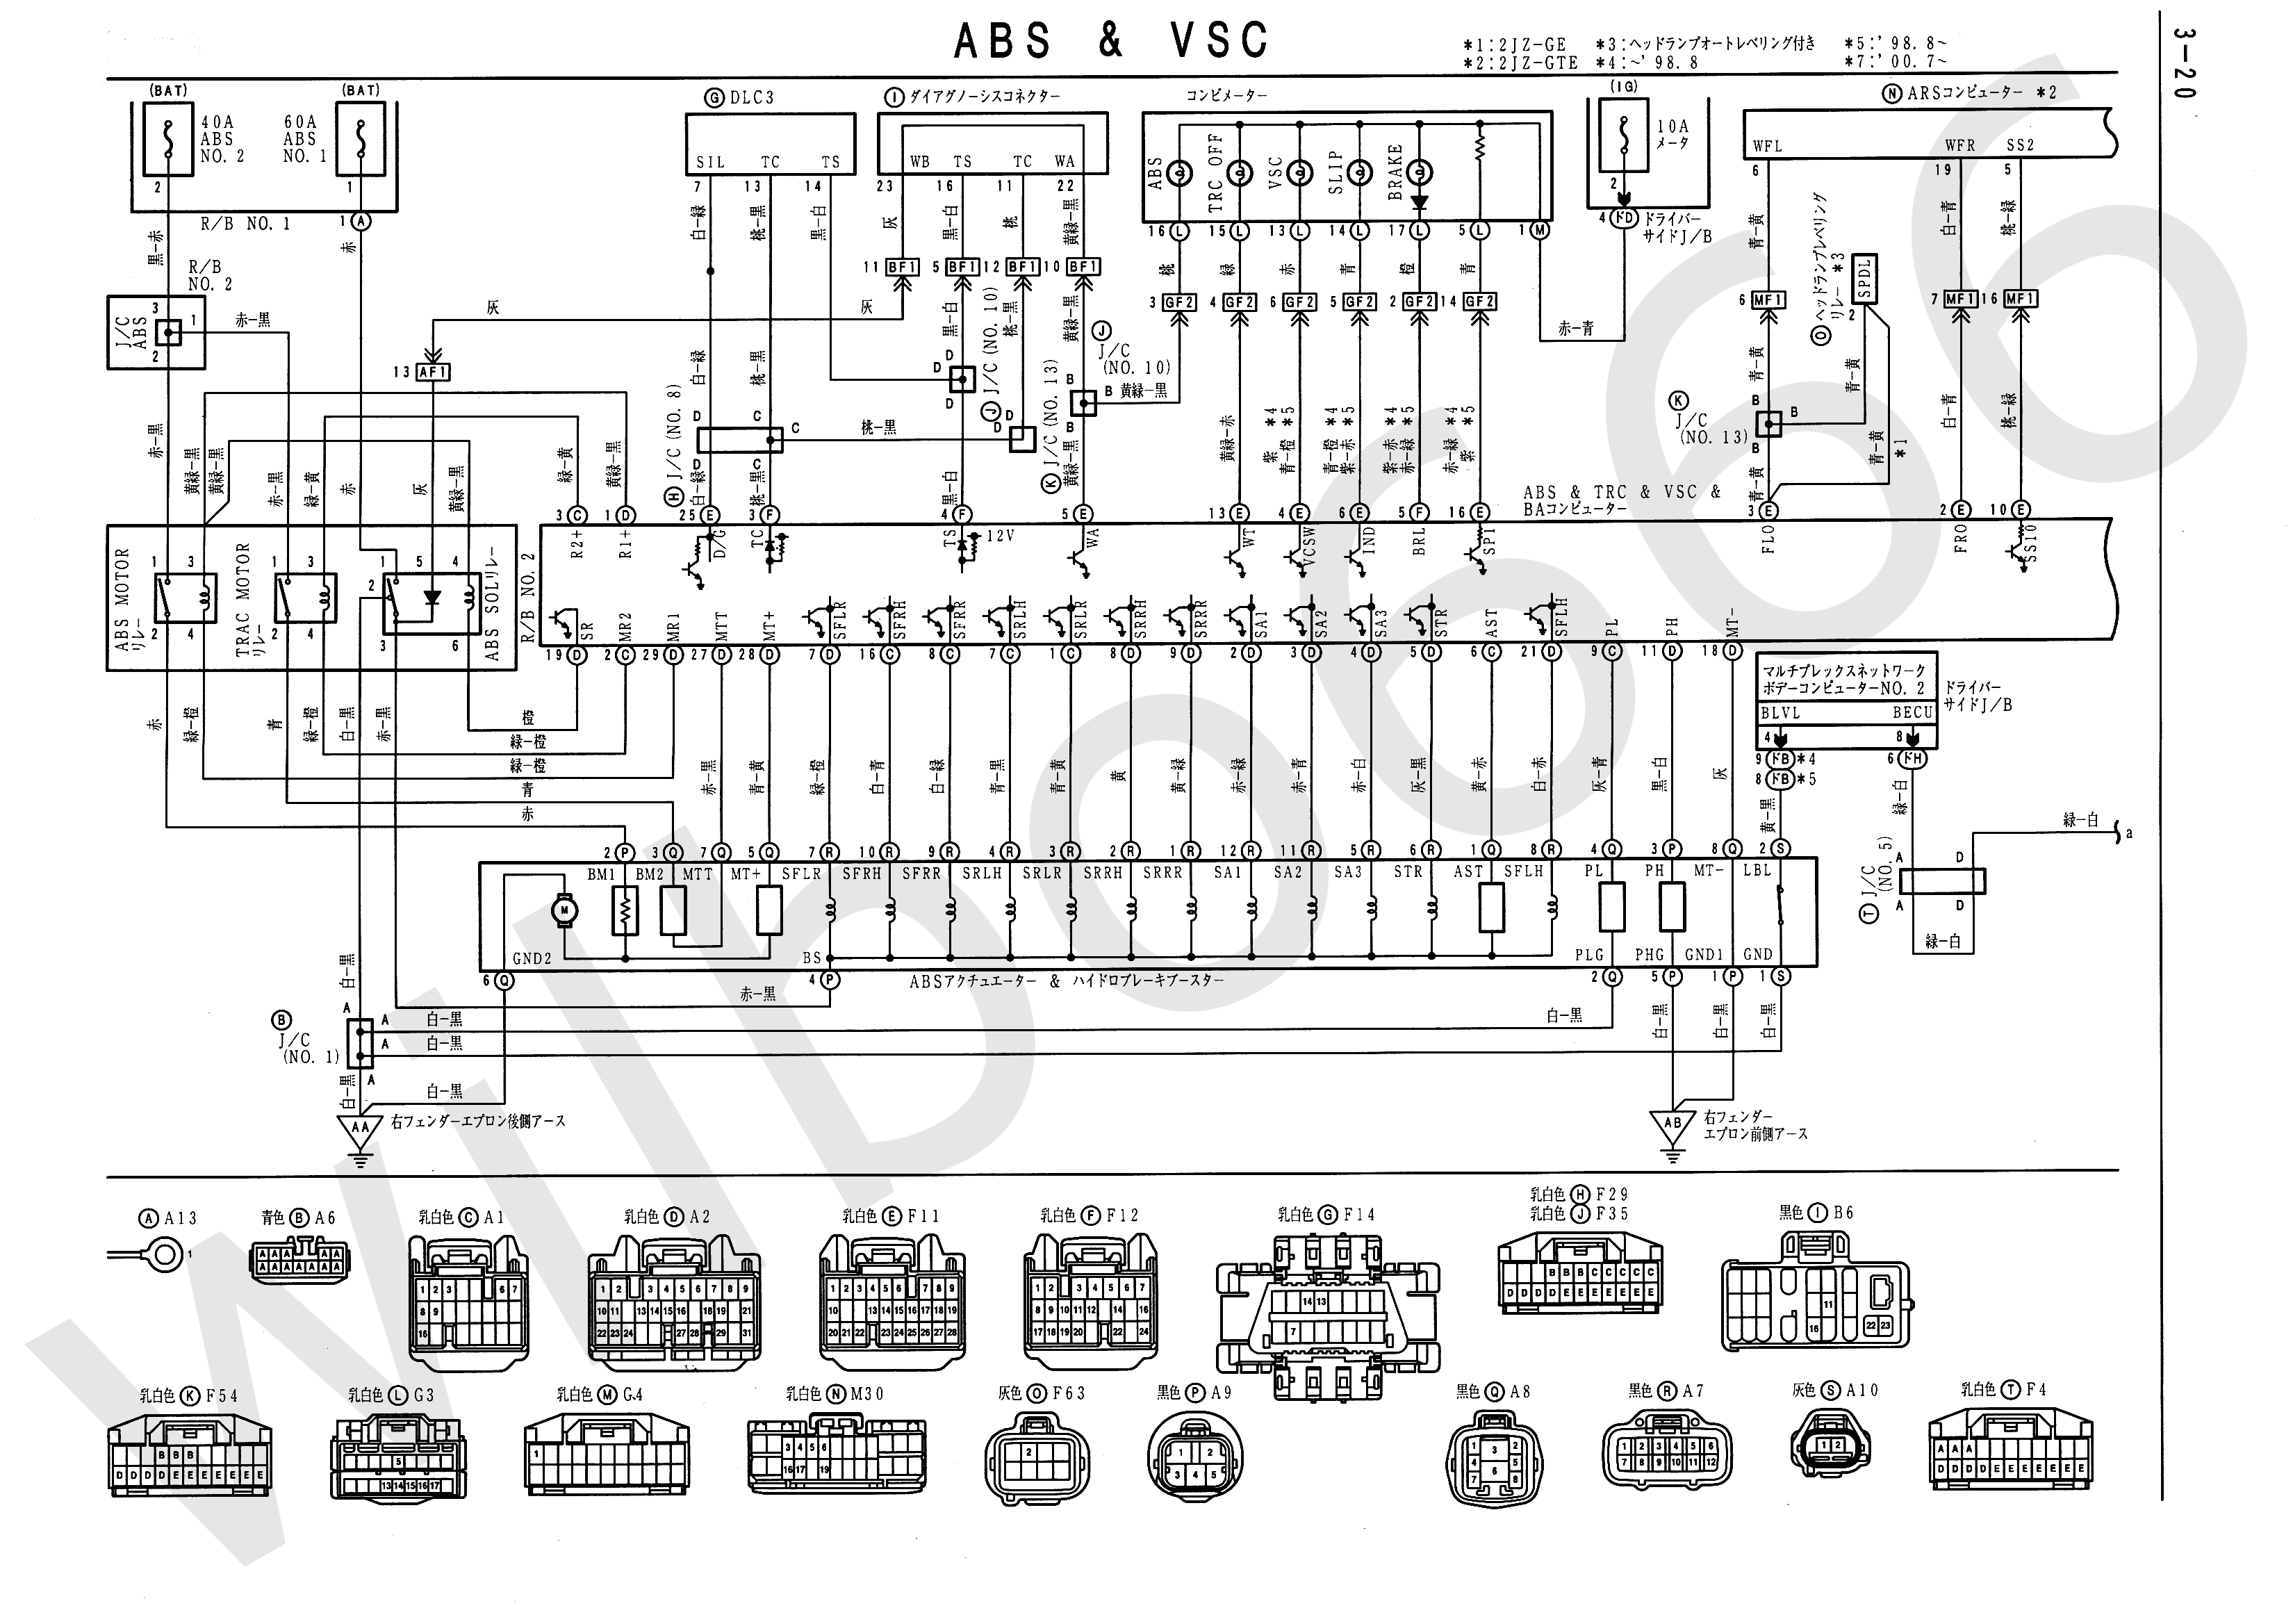 1jz Vvti Wiring Diagram : 23 Wiring Diagram Images